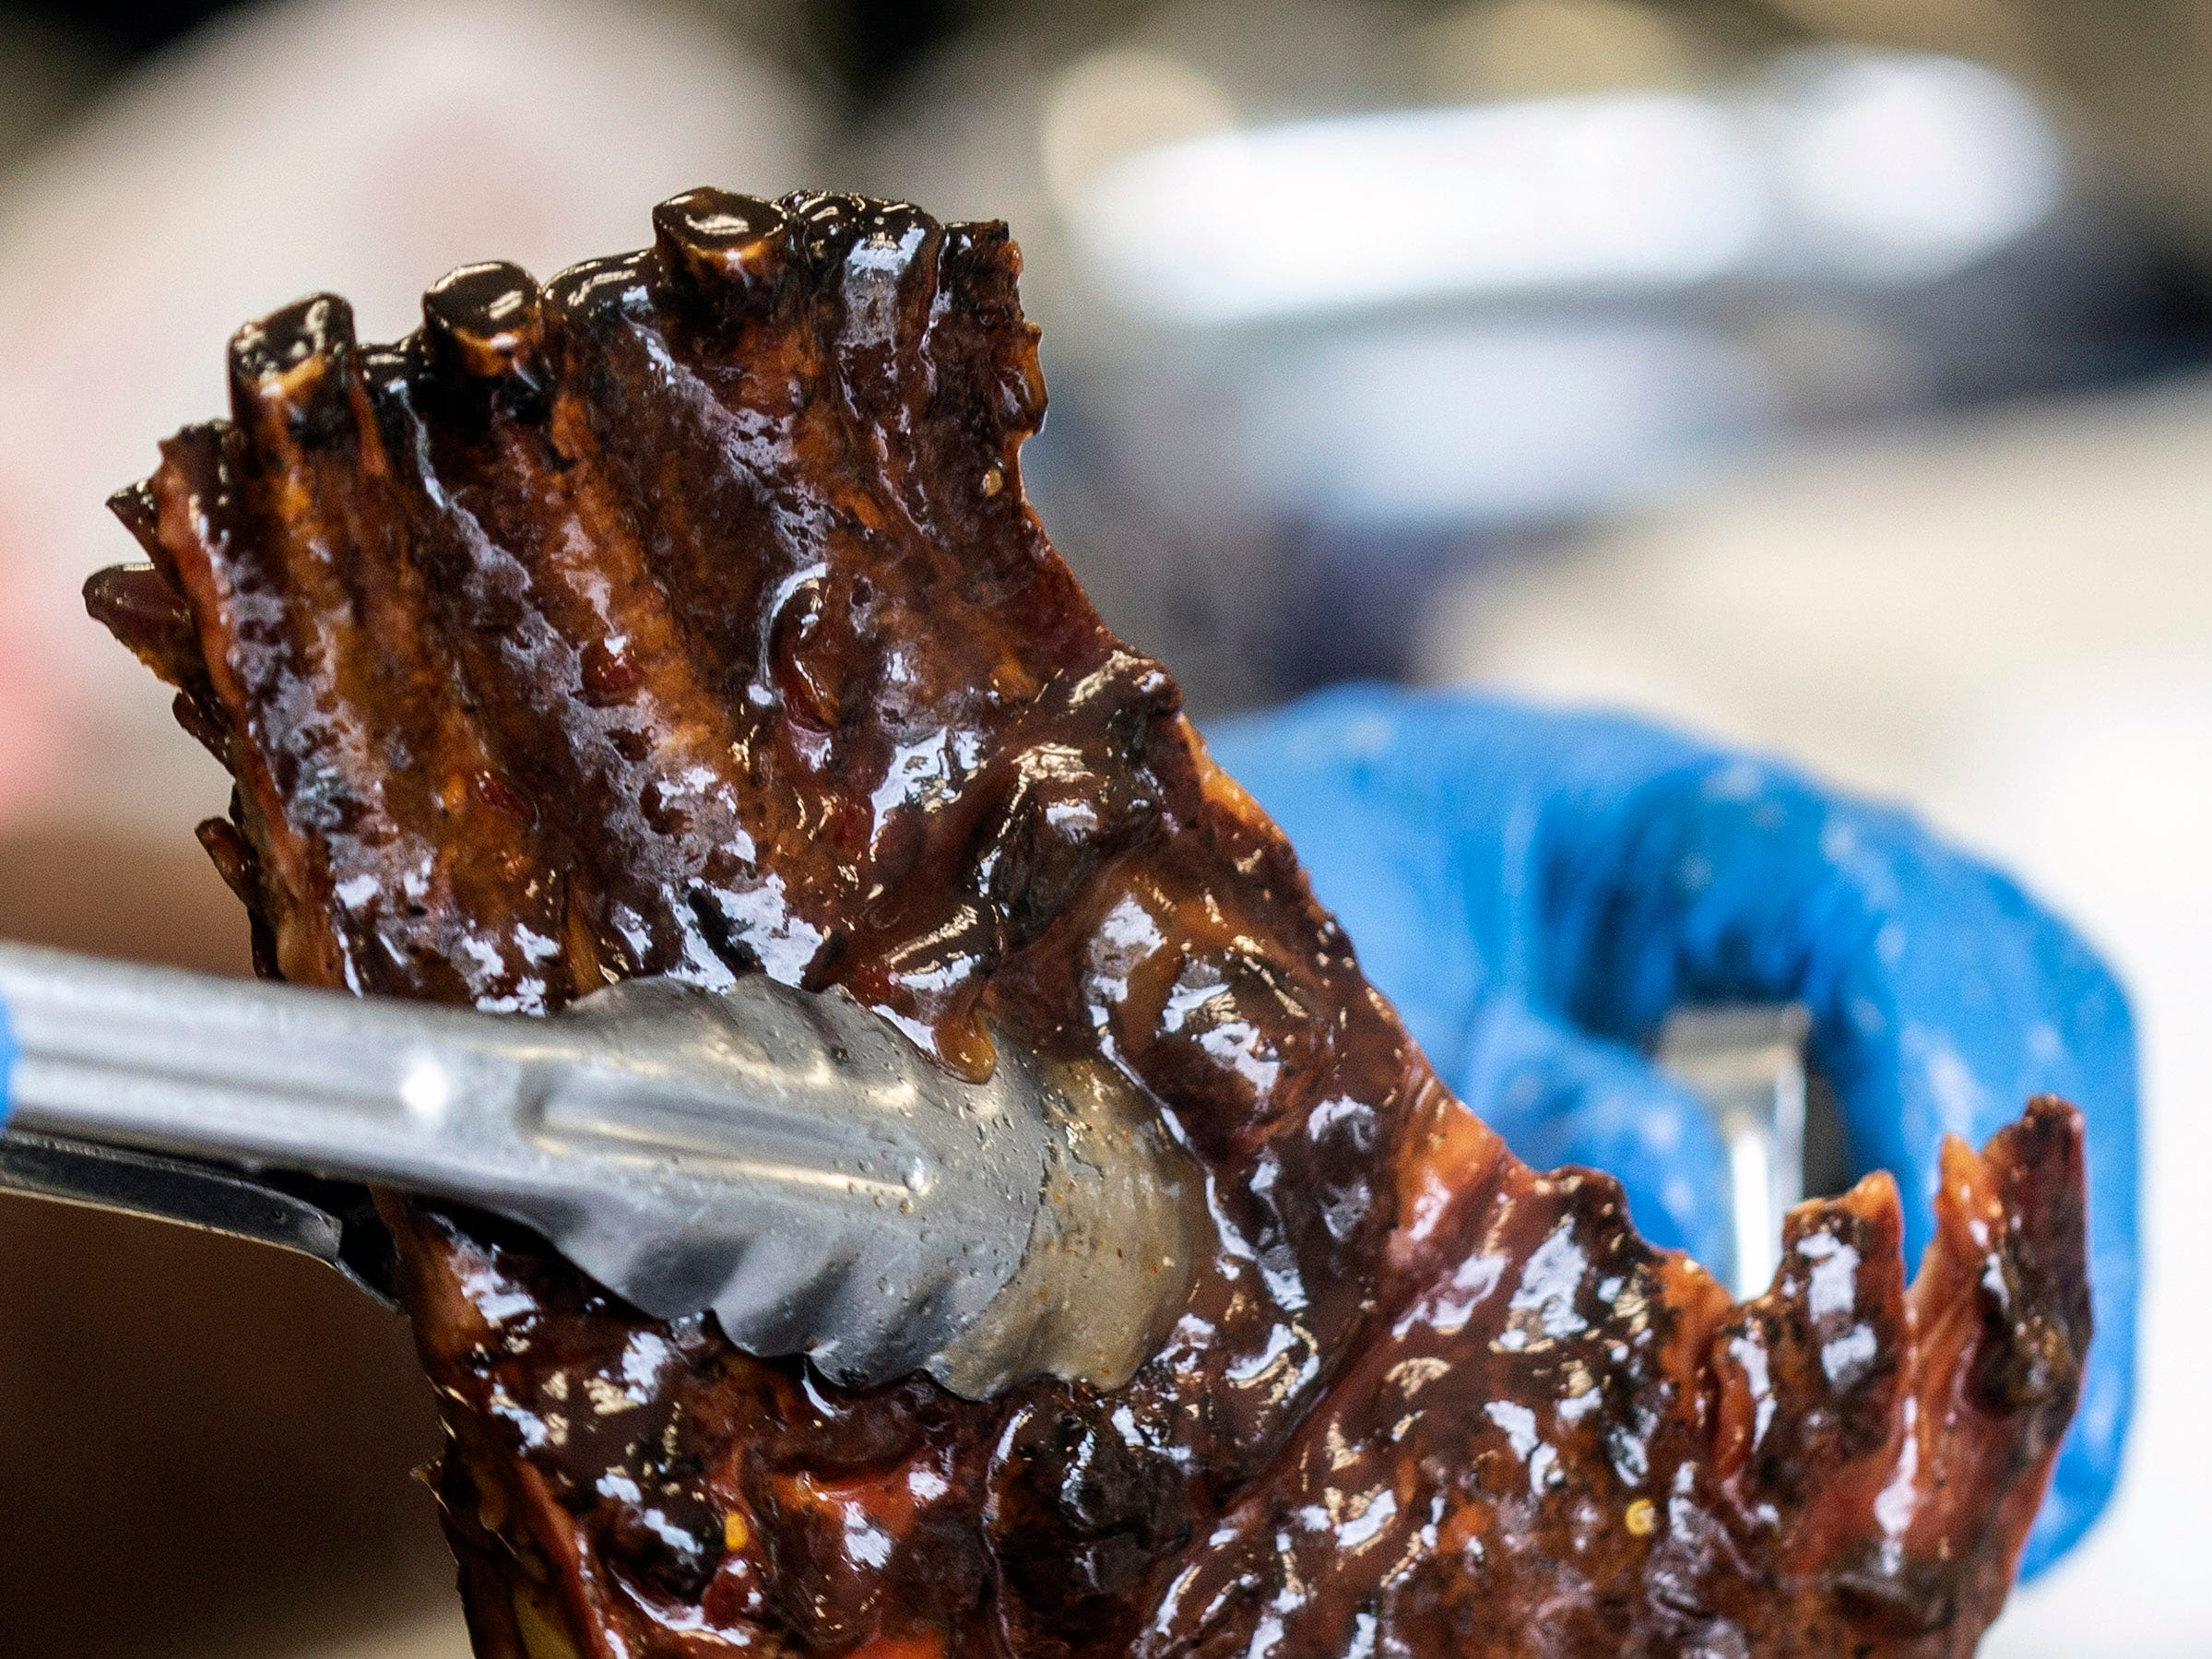 After hours of being smoked, the ribs at Lucretia's Kitchen are then fully submerged in her own BBQ recipe known as liquid gold. 9/9/18